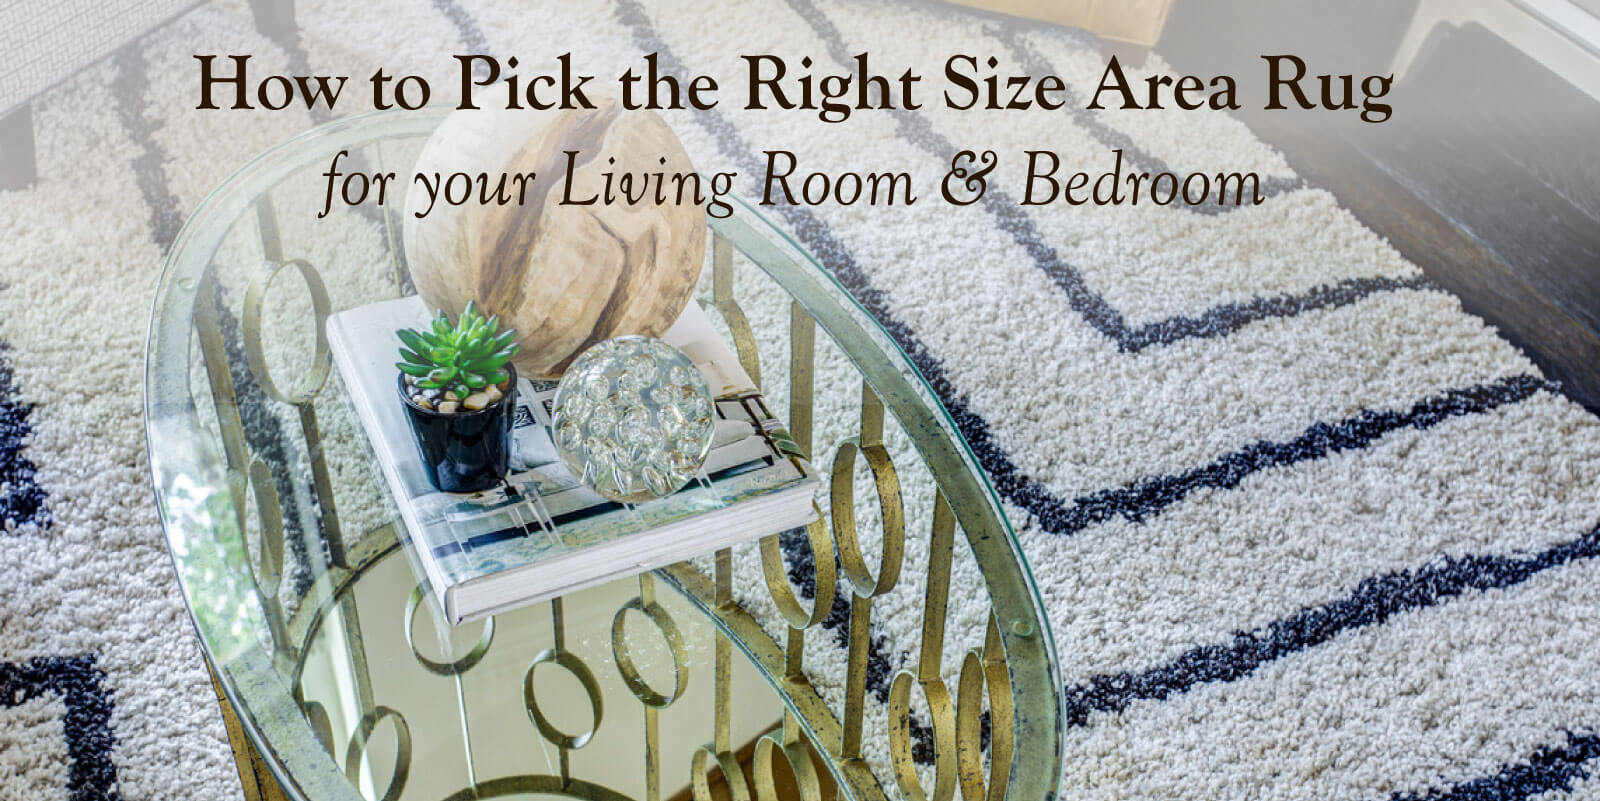 Pick the Right Size Area Rug for your Living Room & Bedroom